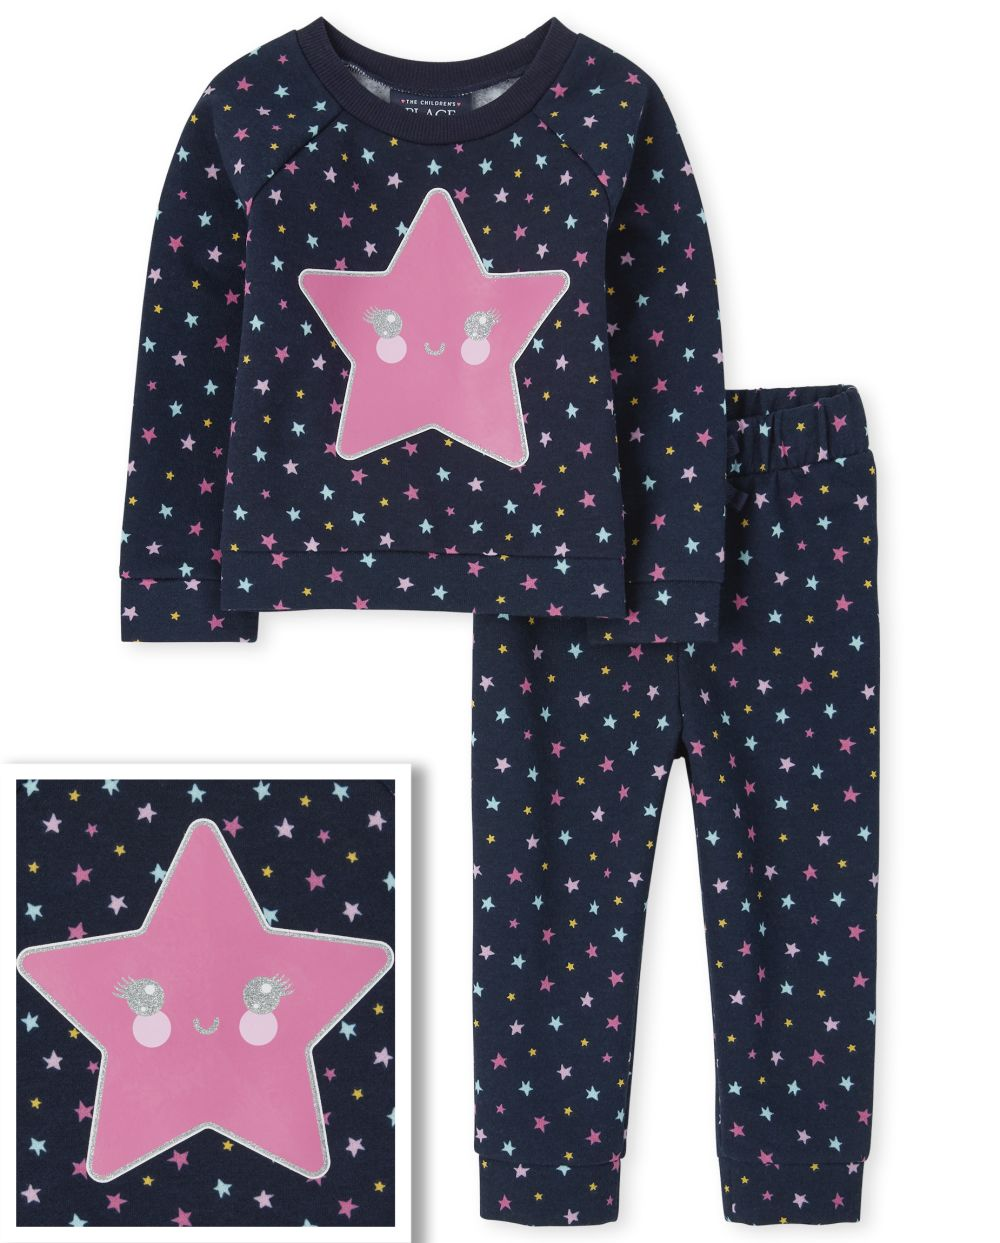 Toddler Girls Star And Dot Outfit Set